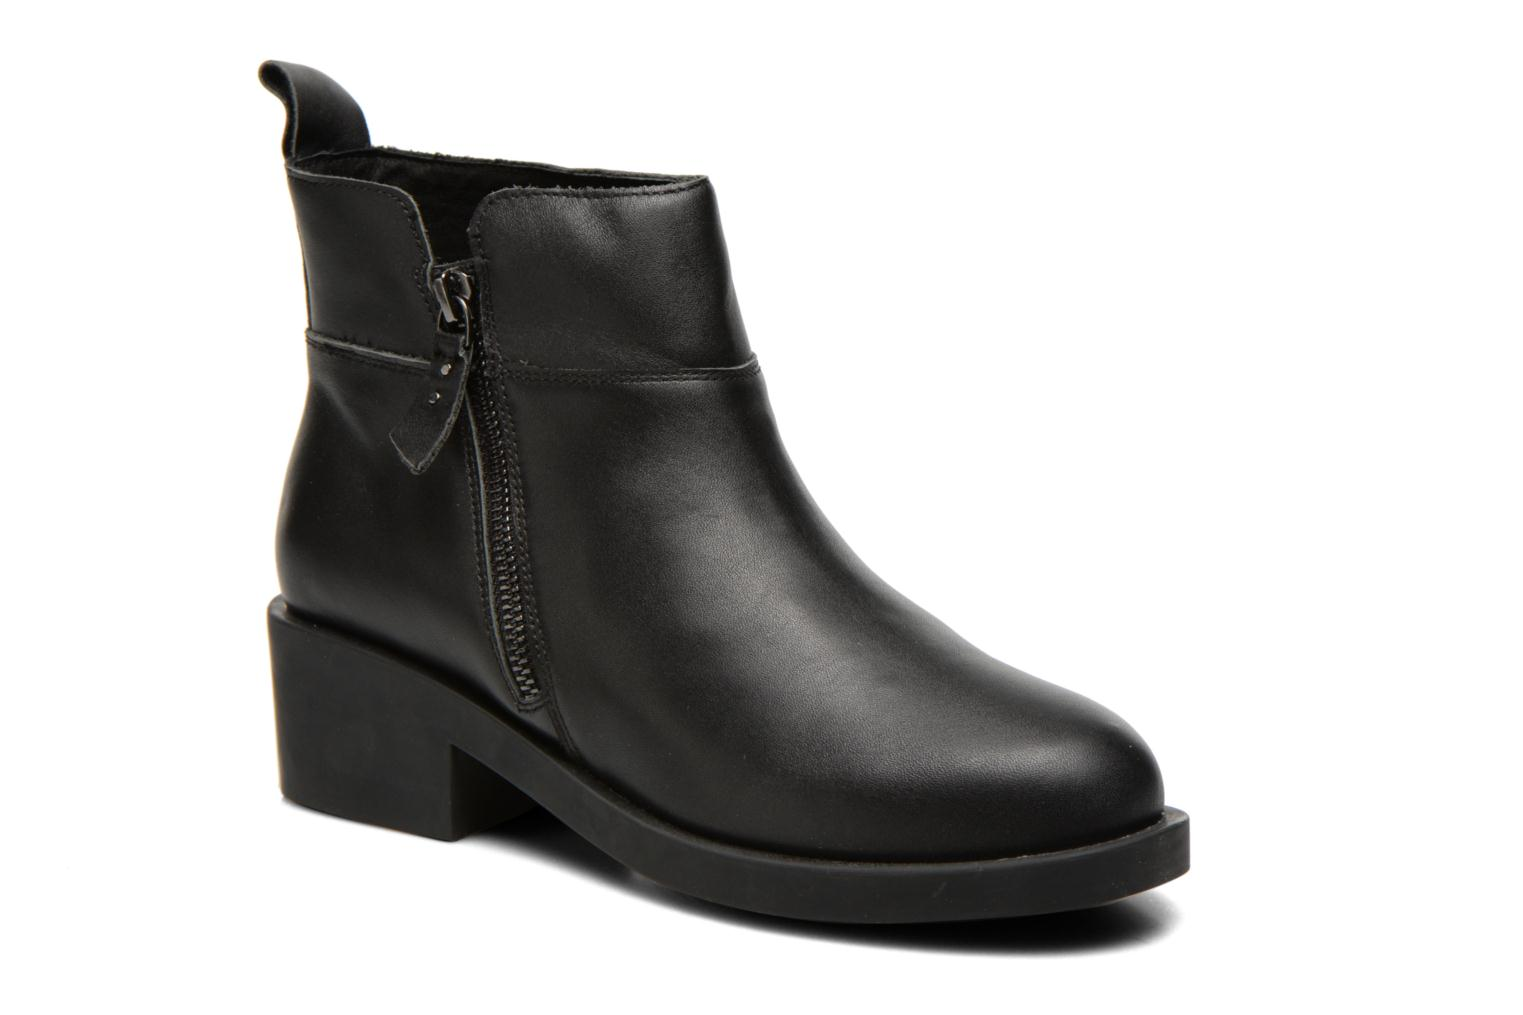 Marques Chaussure femme Schmoove Woman femme Initial Zip Boots Nero